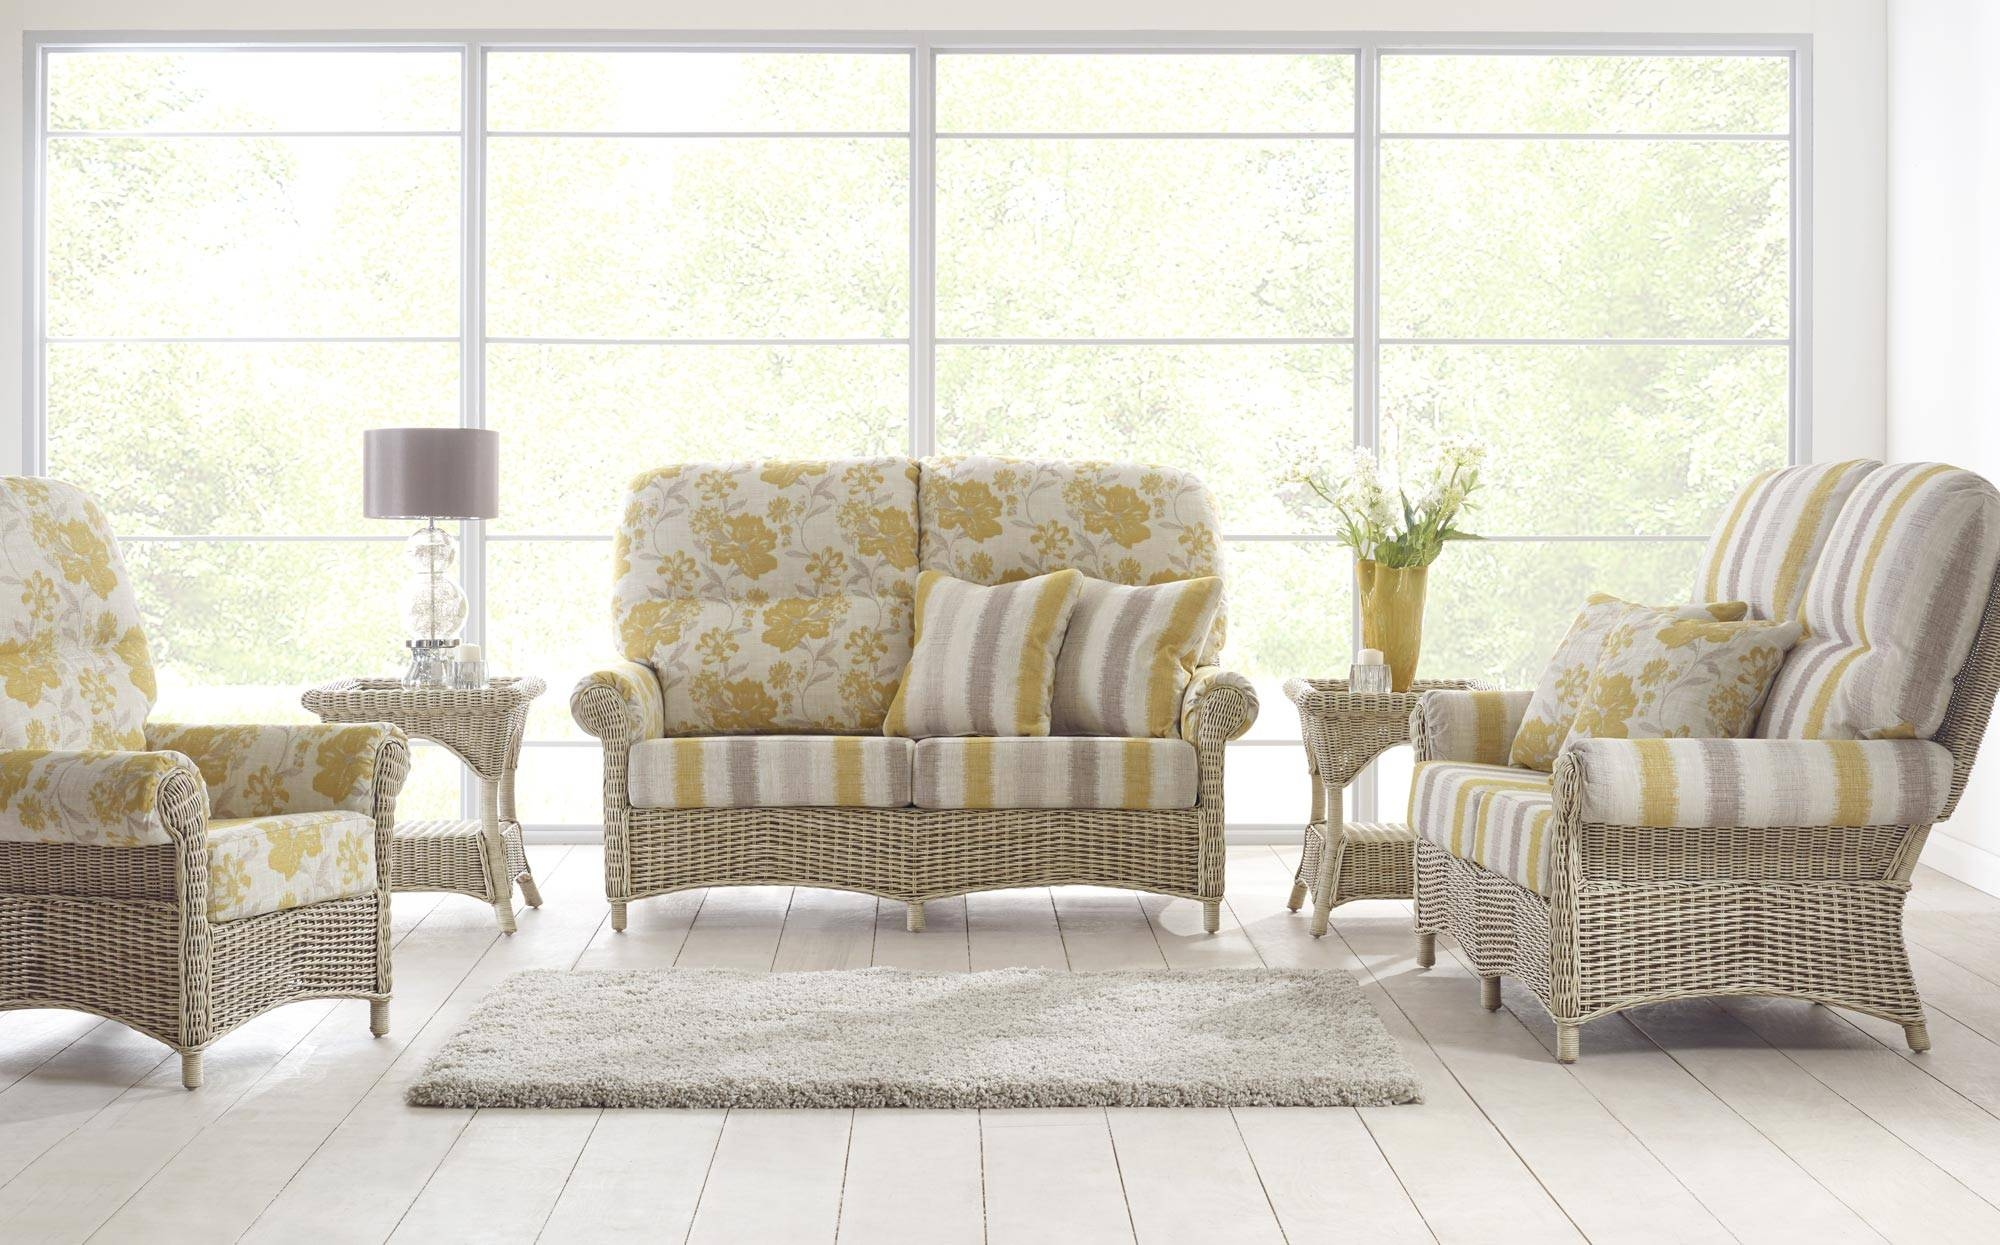 Cane Furniture | Rattan | Wicker |Conservatory Furniture | Vaseys pertaining to Cane Sofas (Image 4 of 15)